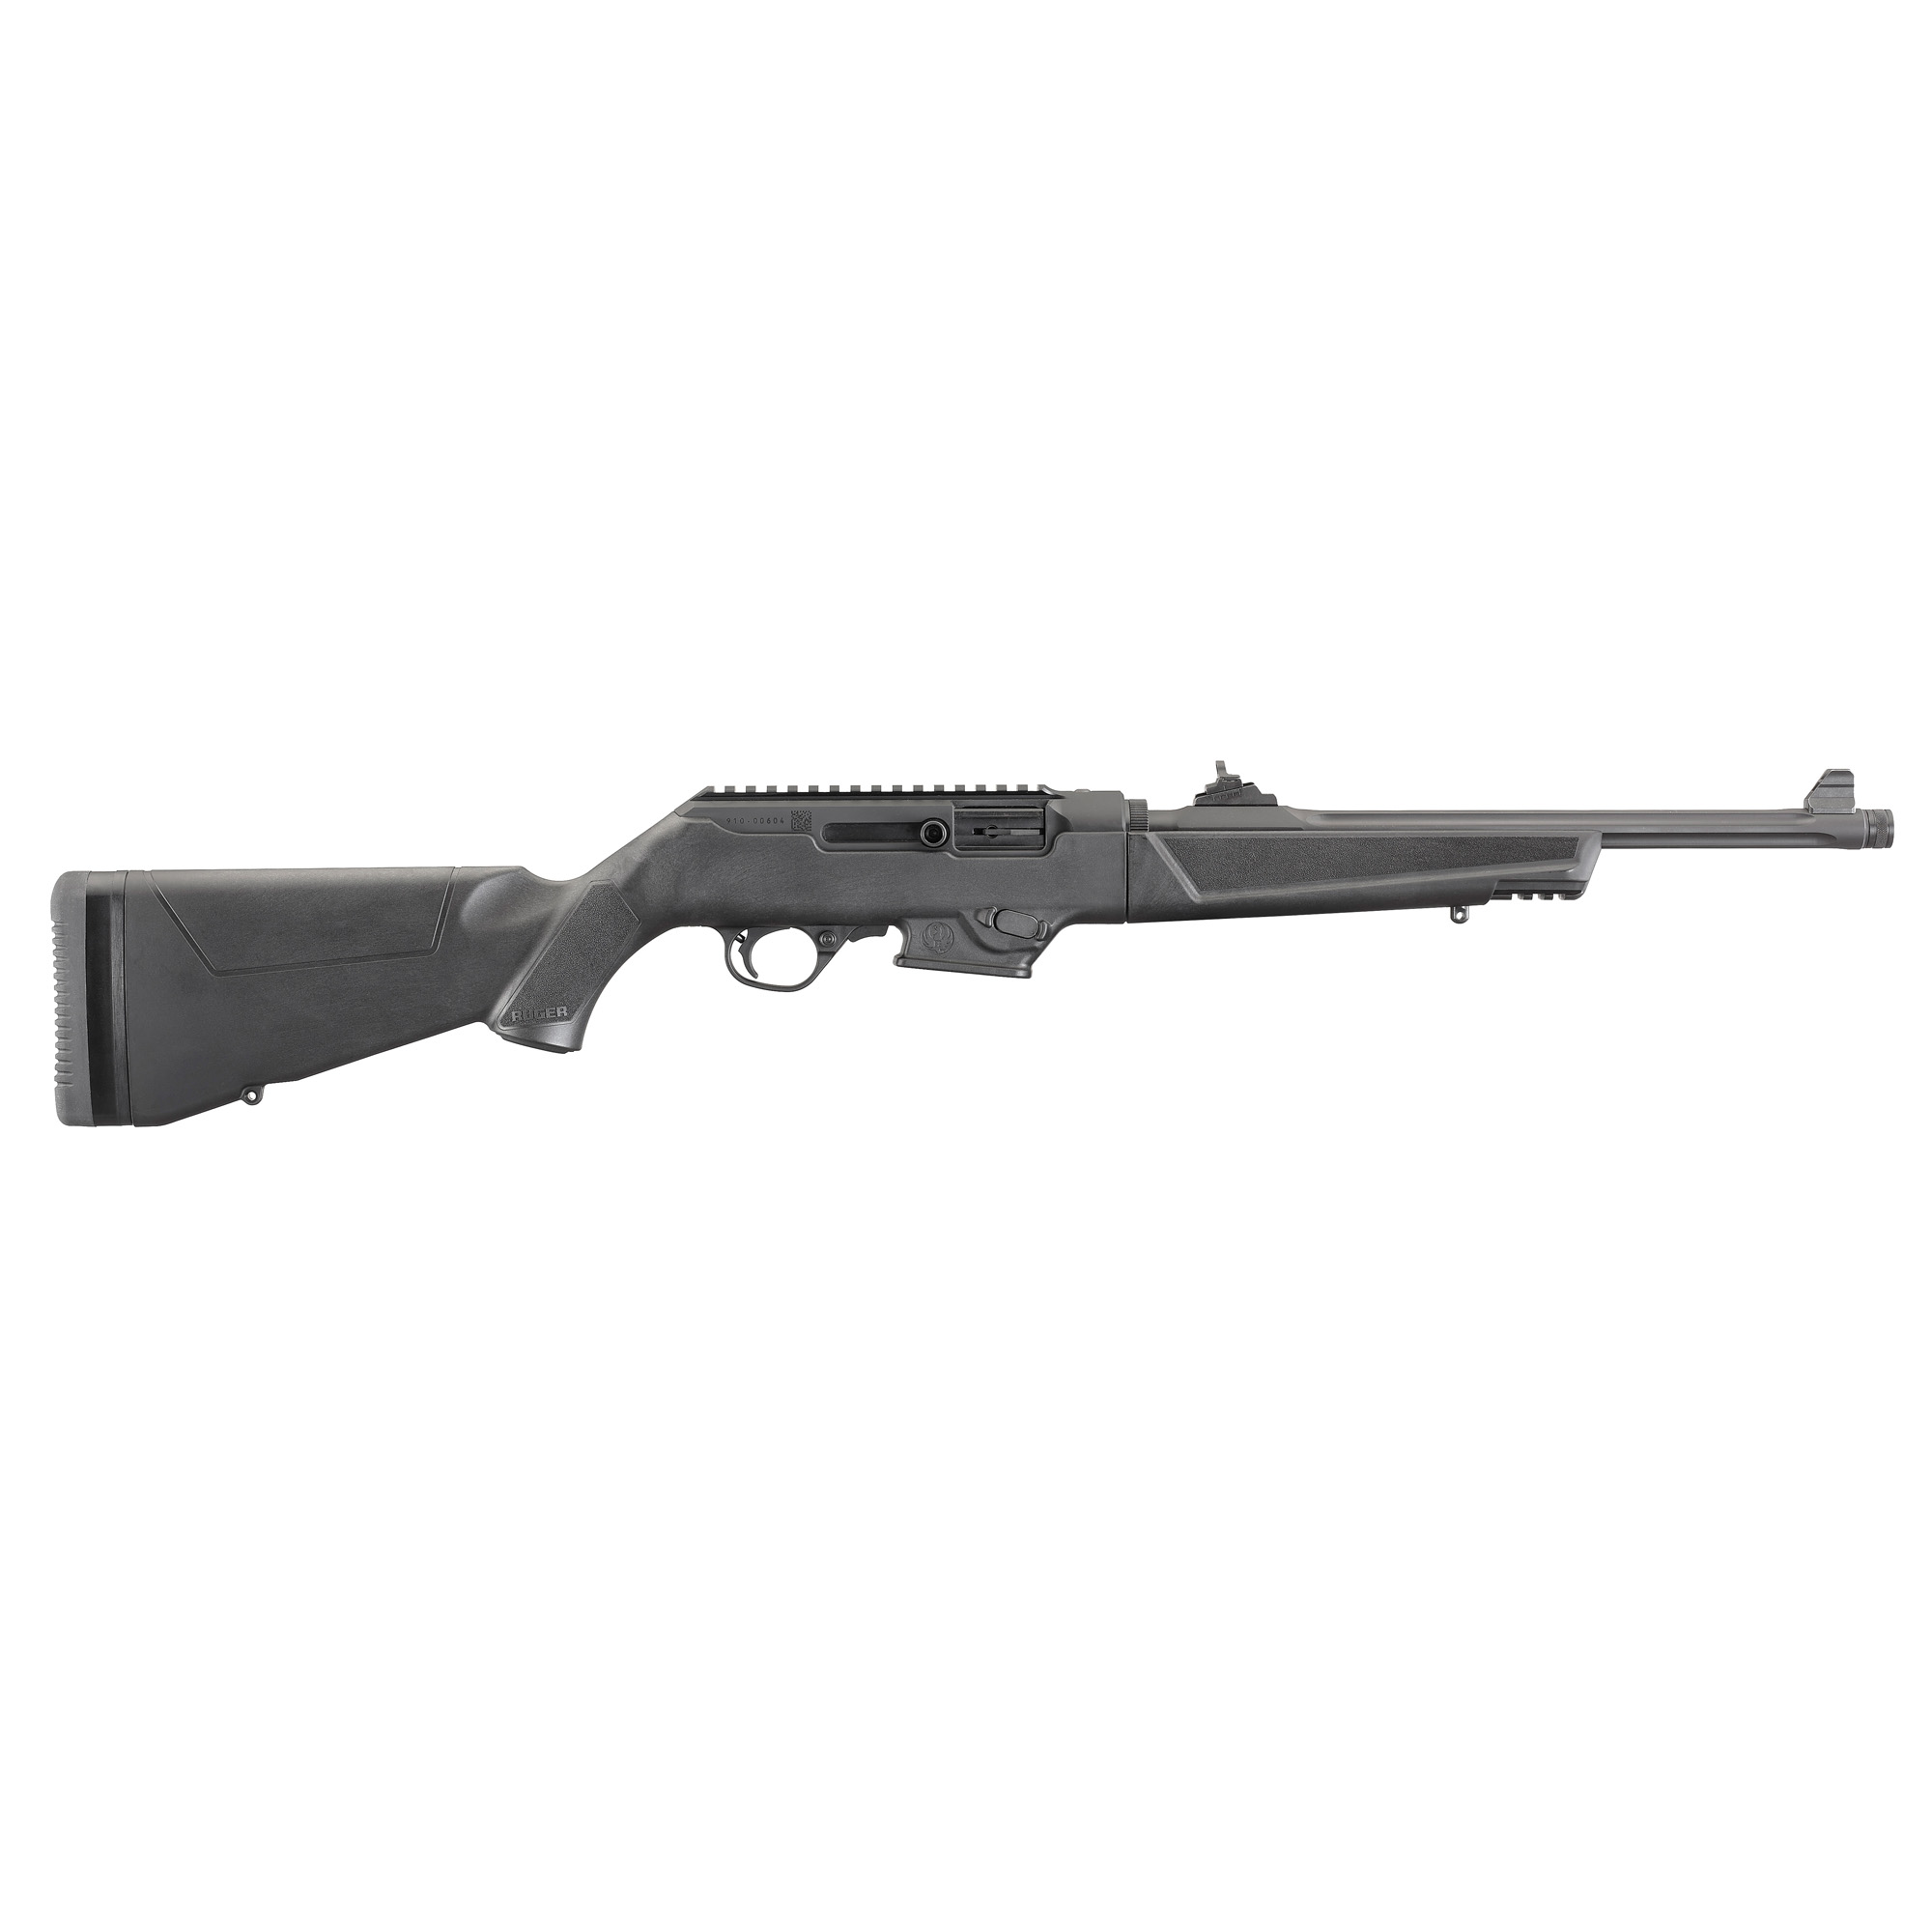 Ruger PC Carbine 9mm 17rd TB · DK Firearms